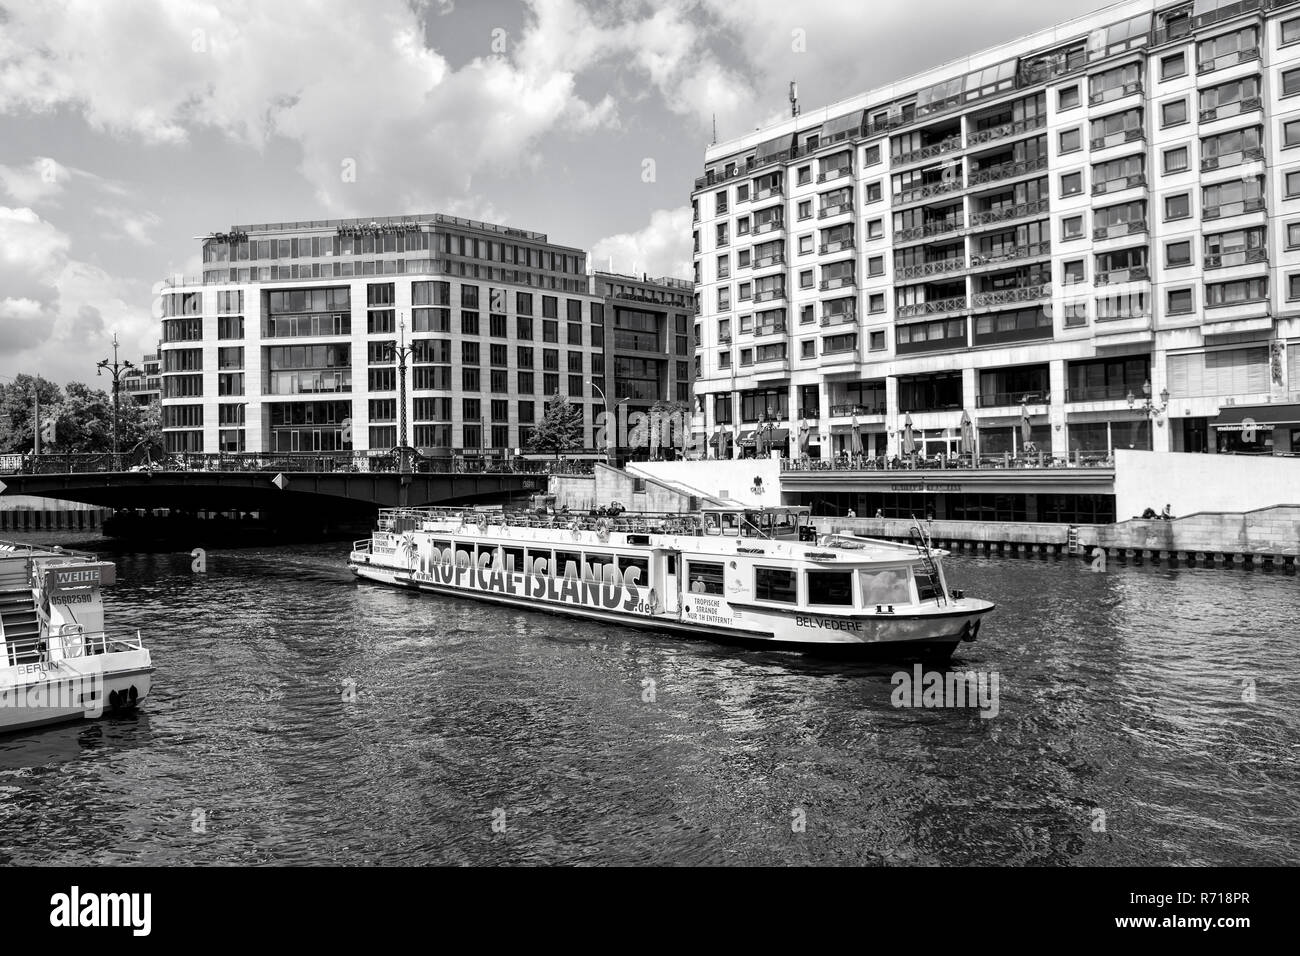 Berlin, Germany - May 31, 2017: tourist ship on river water on cloudy sky on city skyline background. Travelling and boat trip, concept - Stock Image